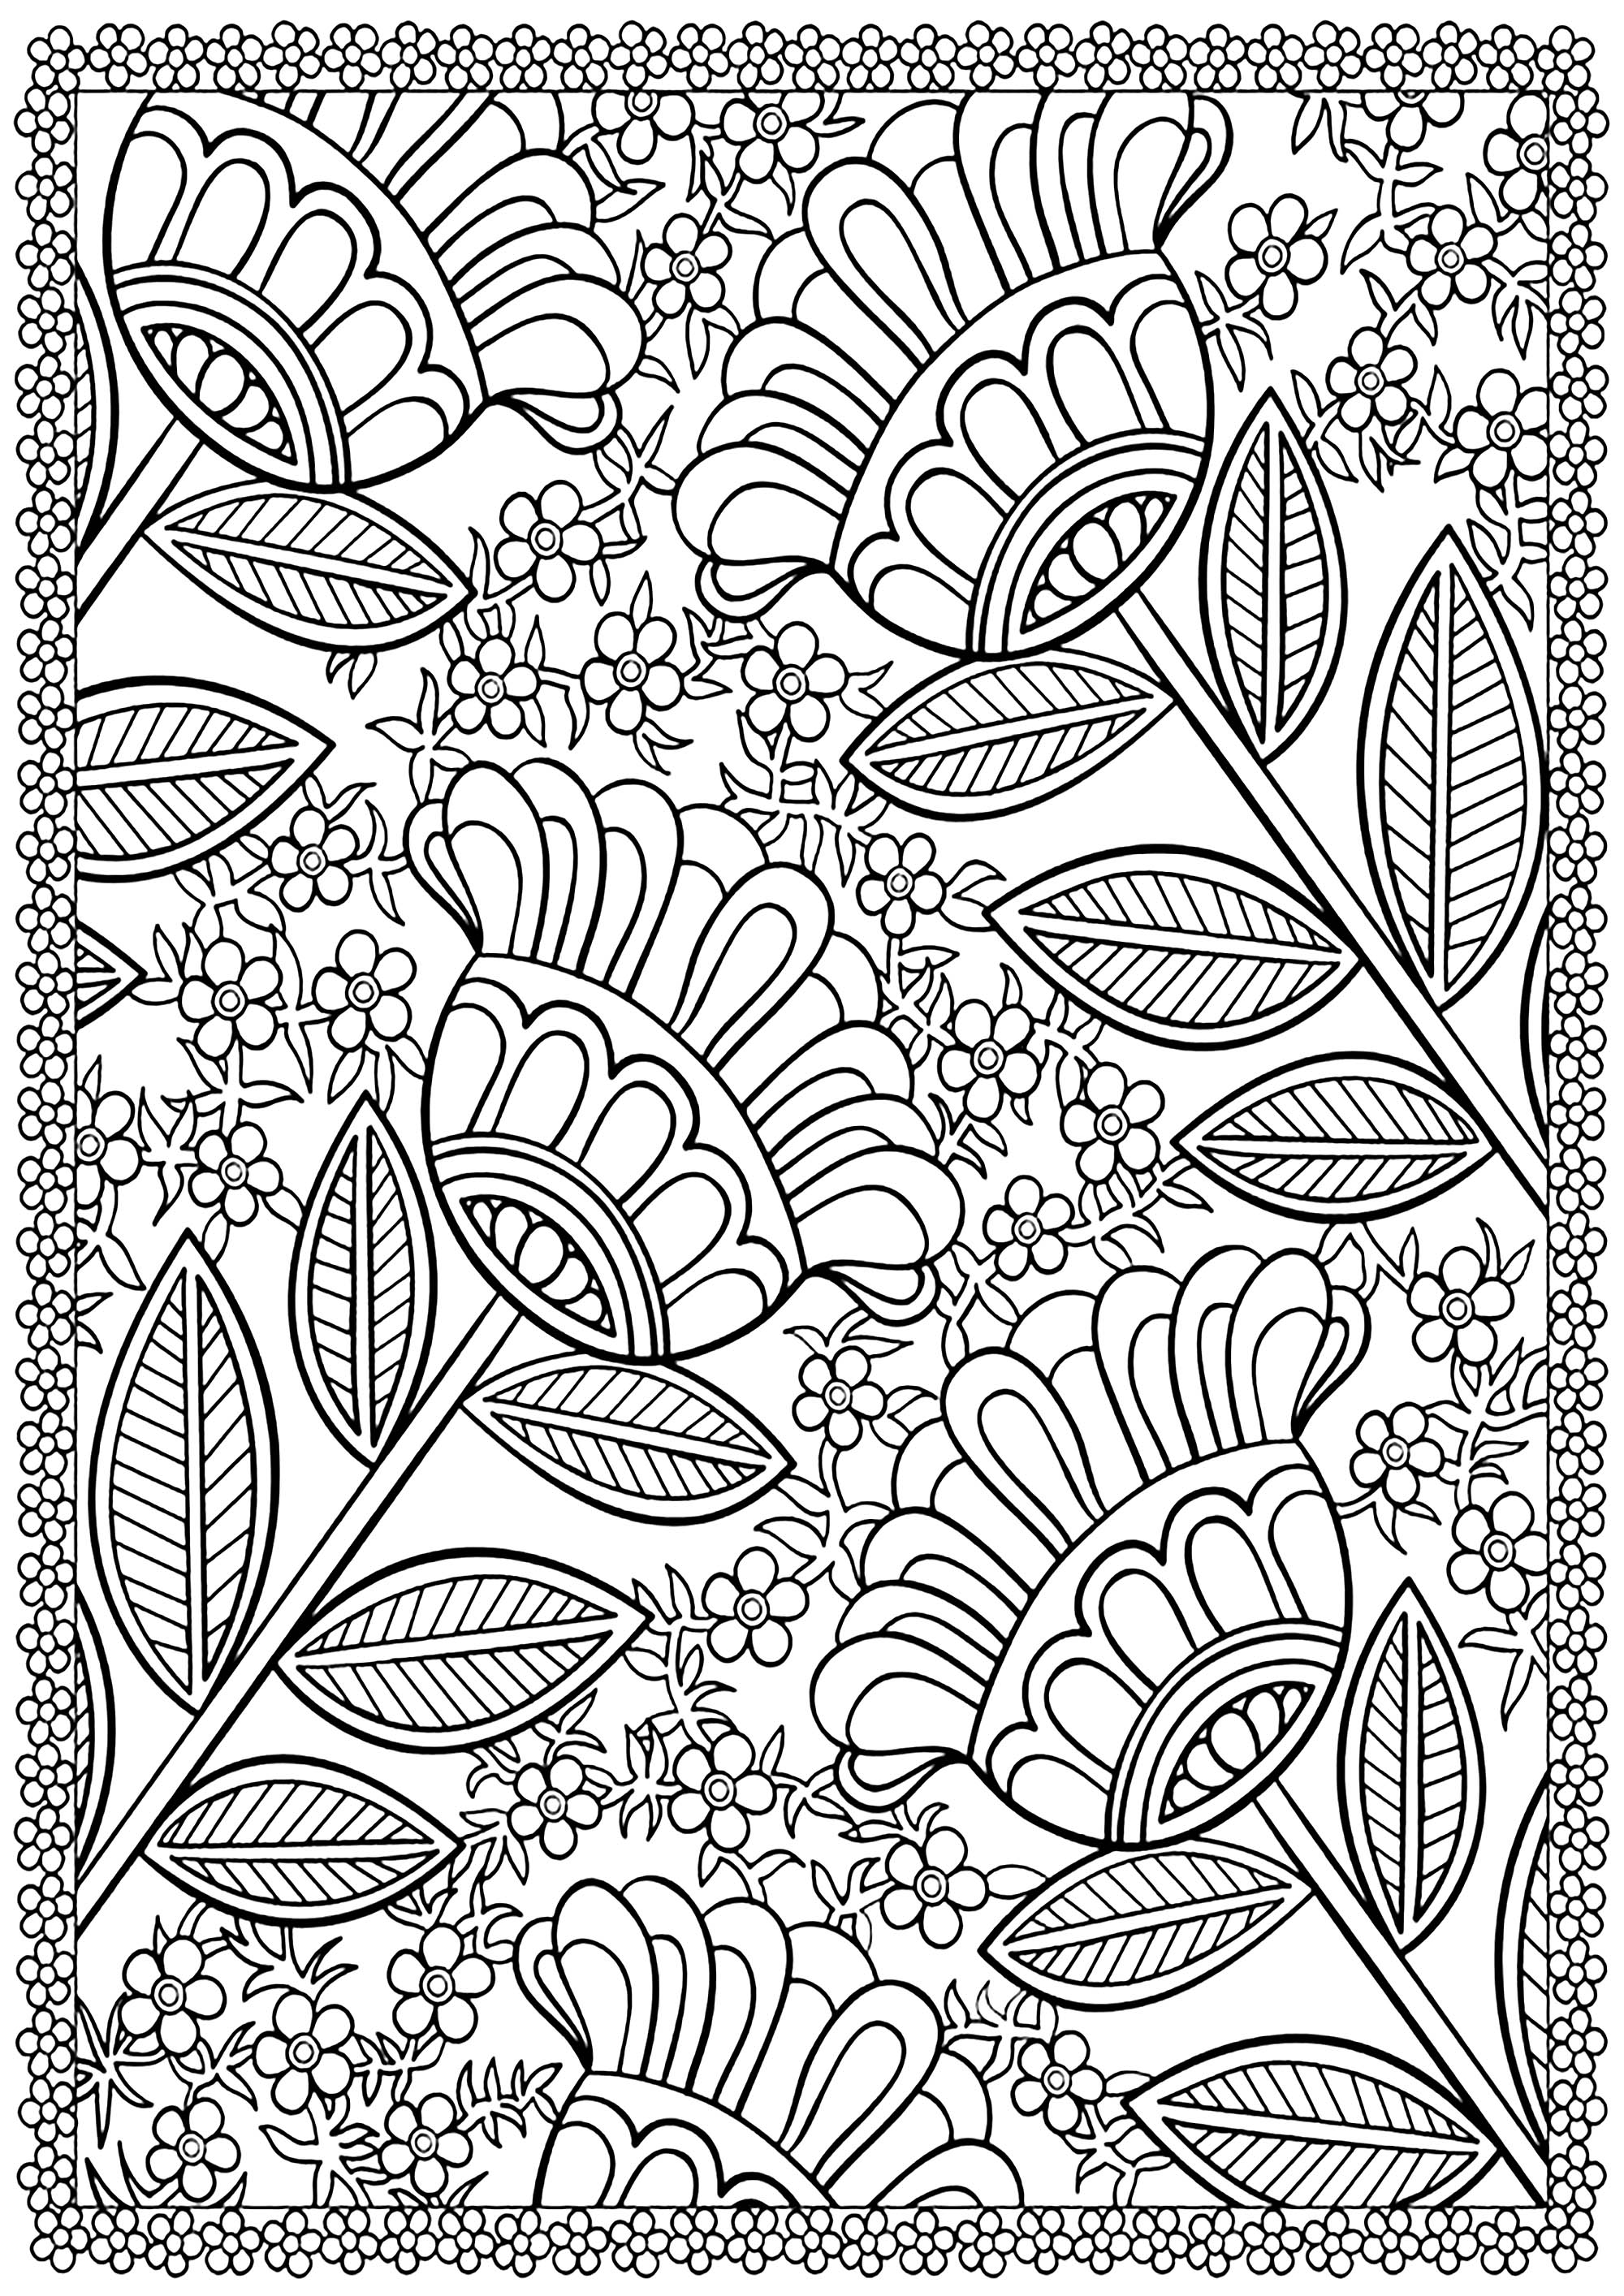 small flower coloring pages - photo#40